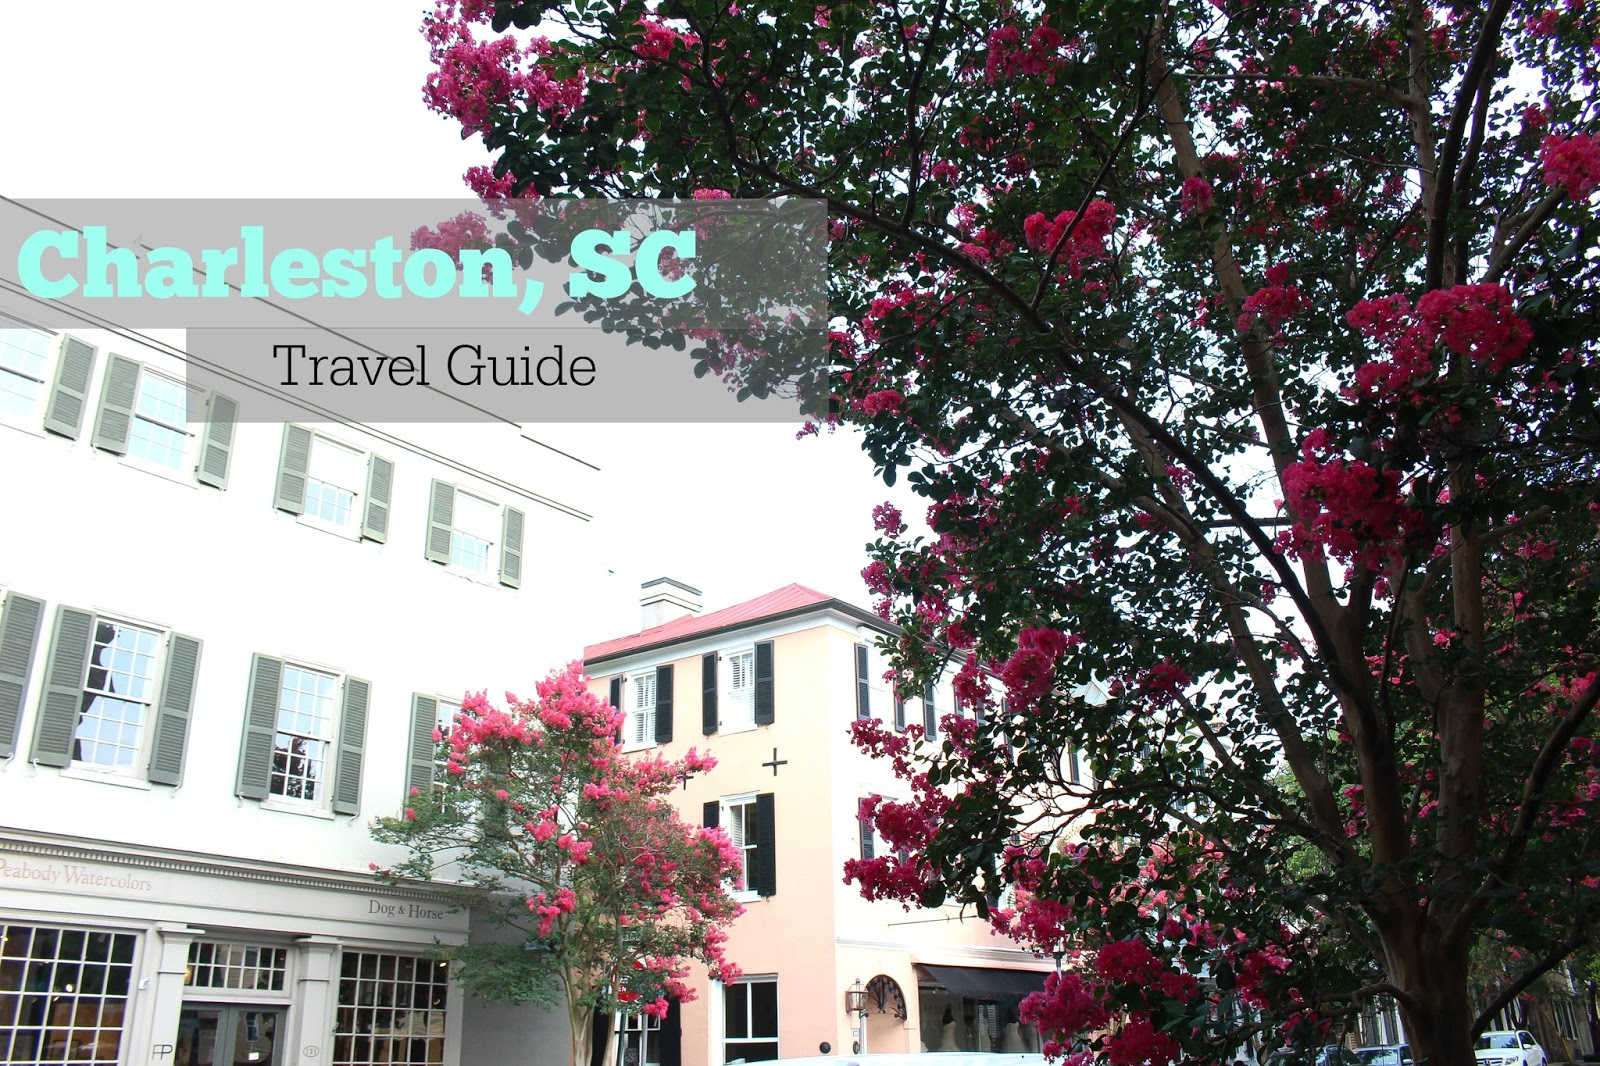 South Carolina - travel guide - charleston